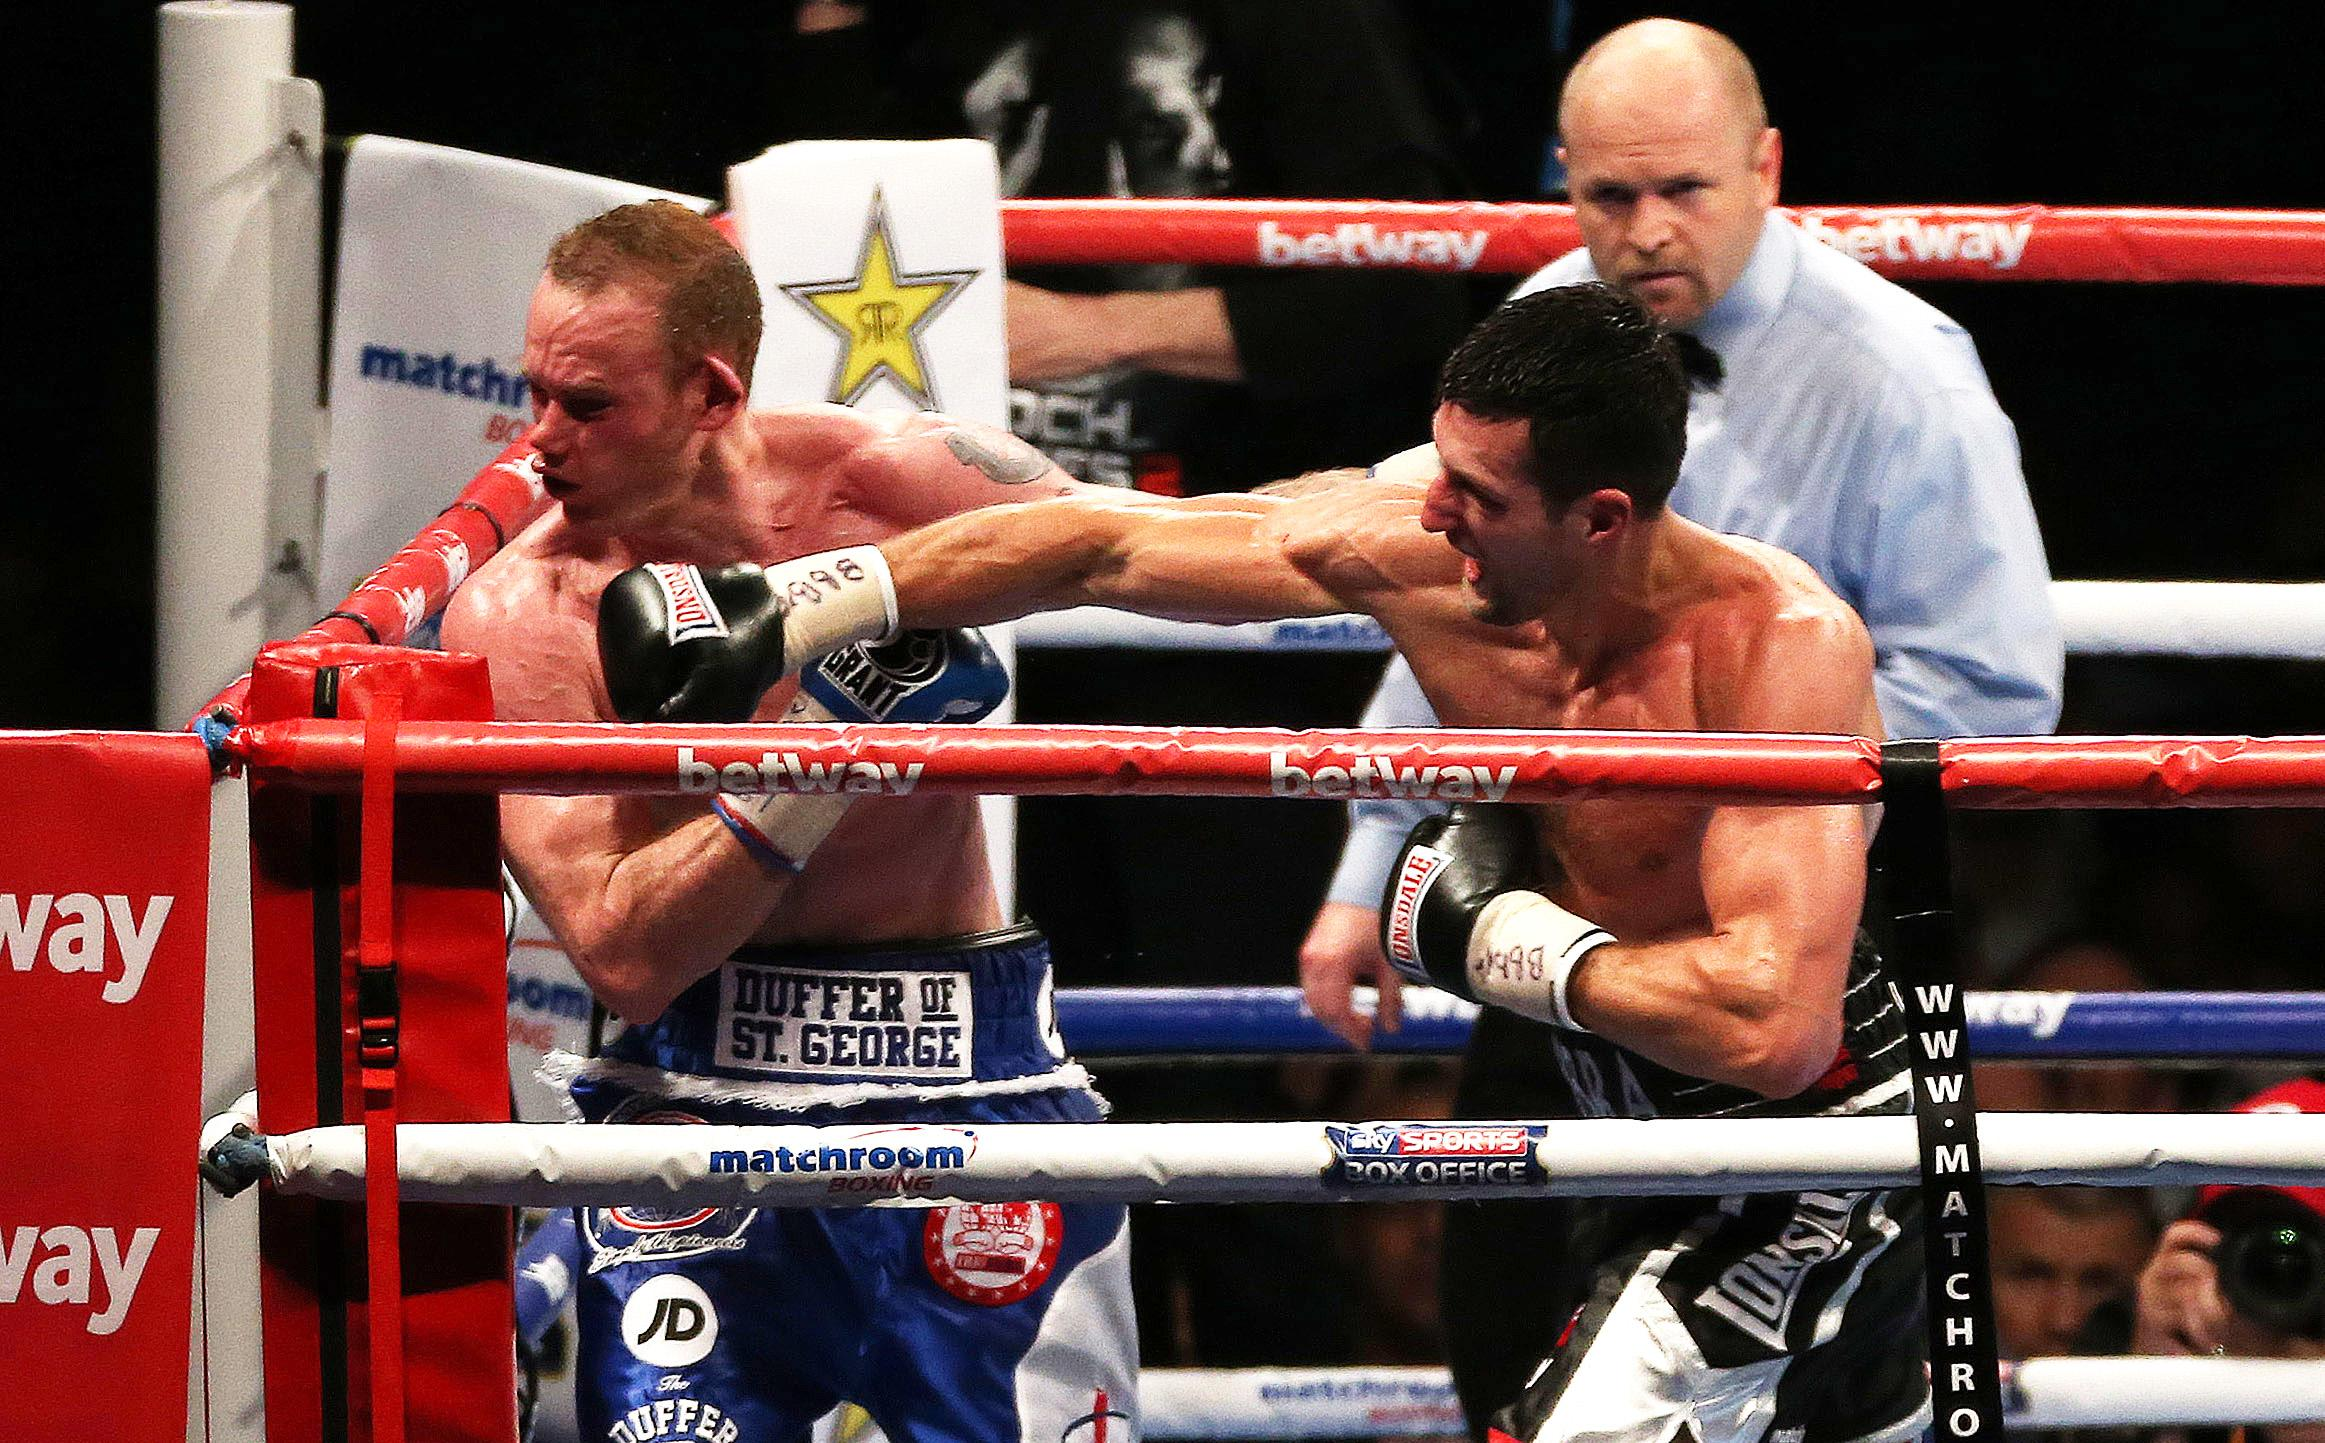 Groves, 30, suffered a brutal knockout at the hands of Carl Froch at Wembley in 2014